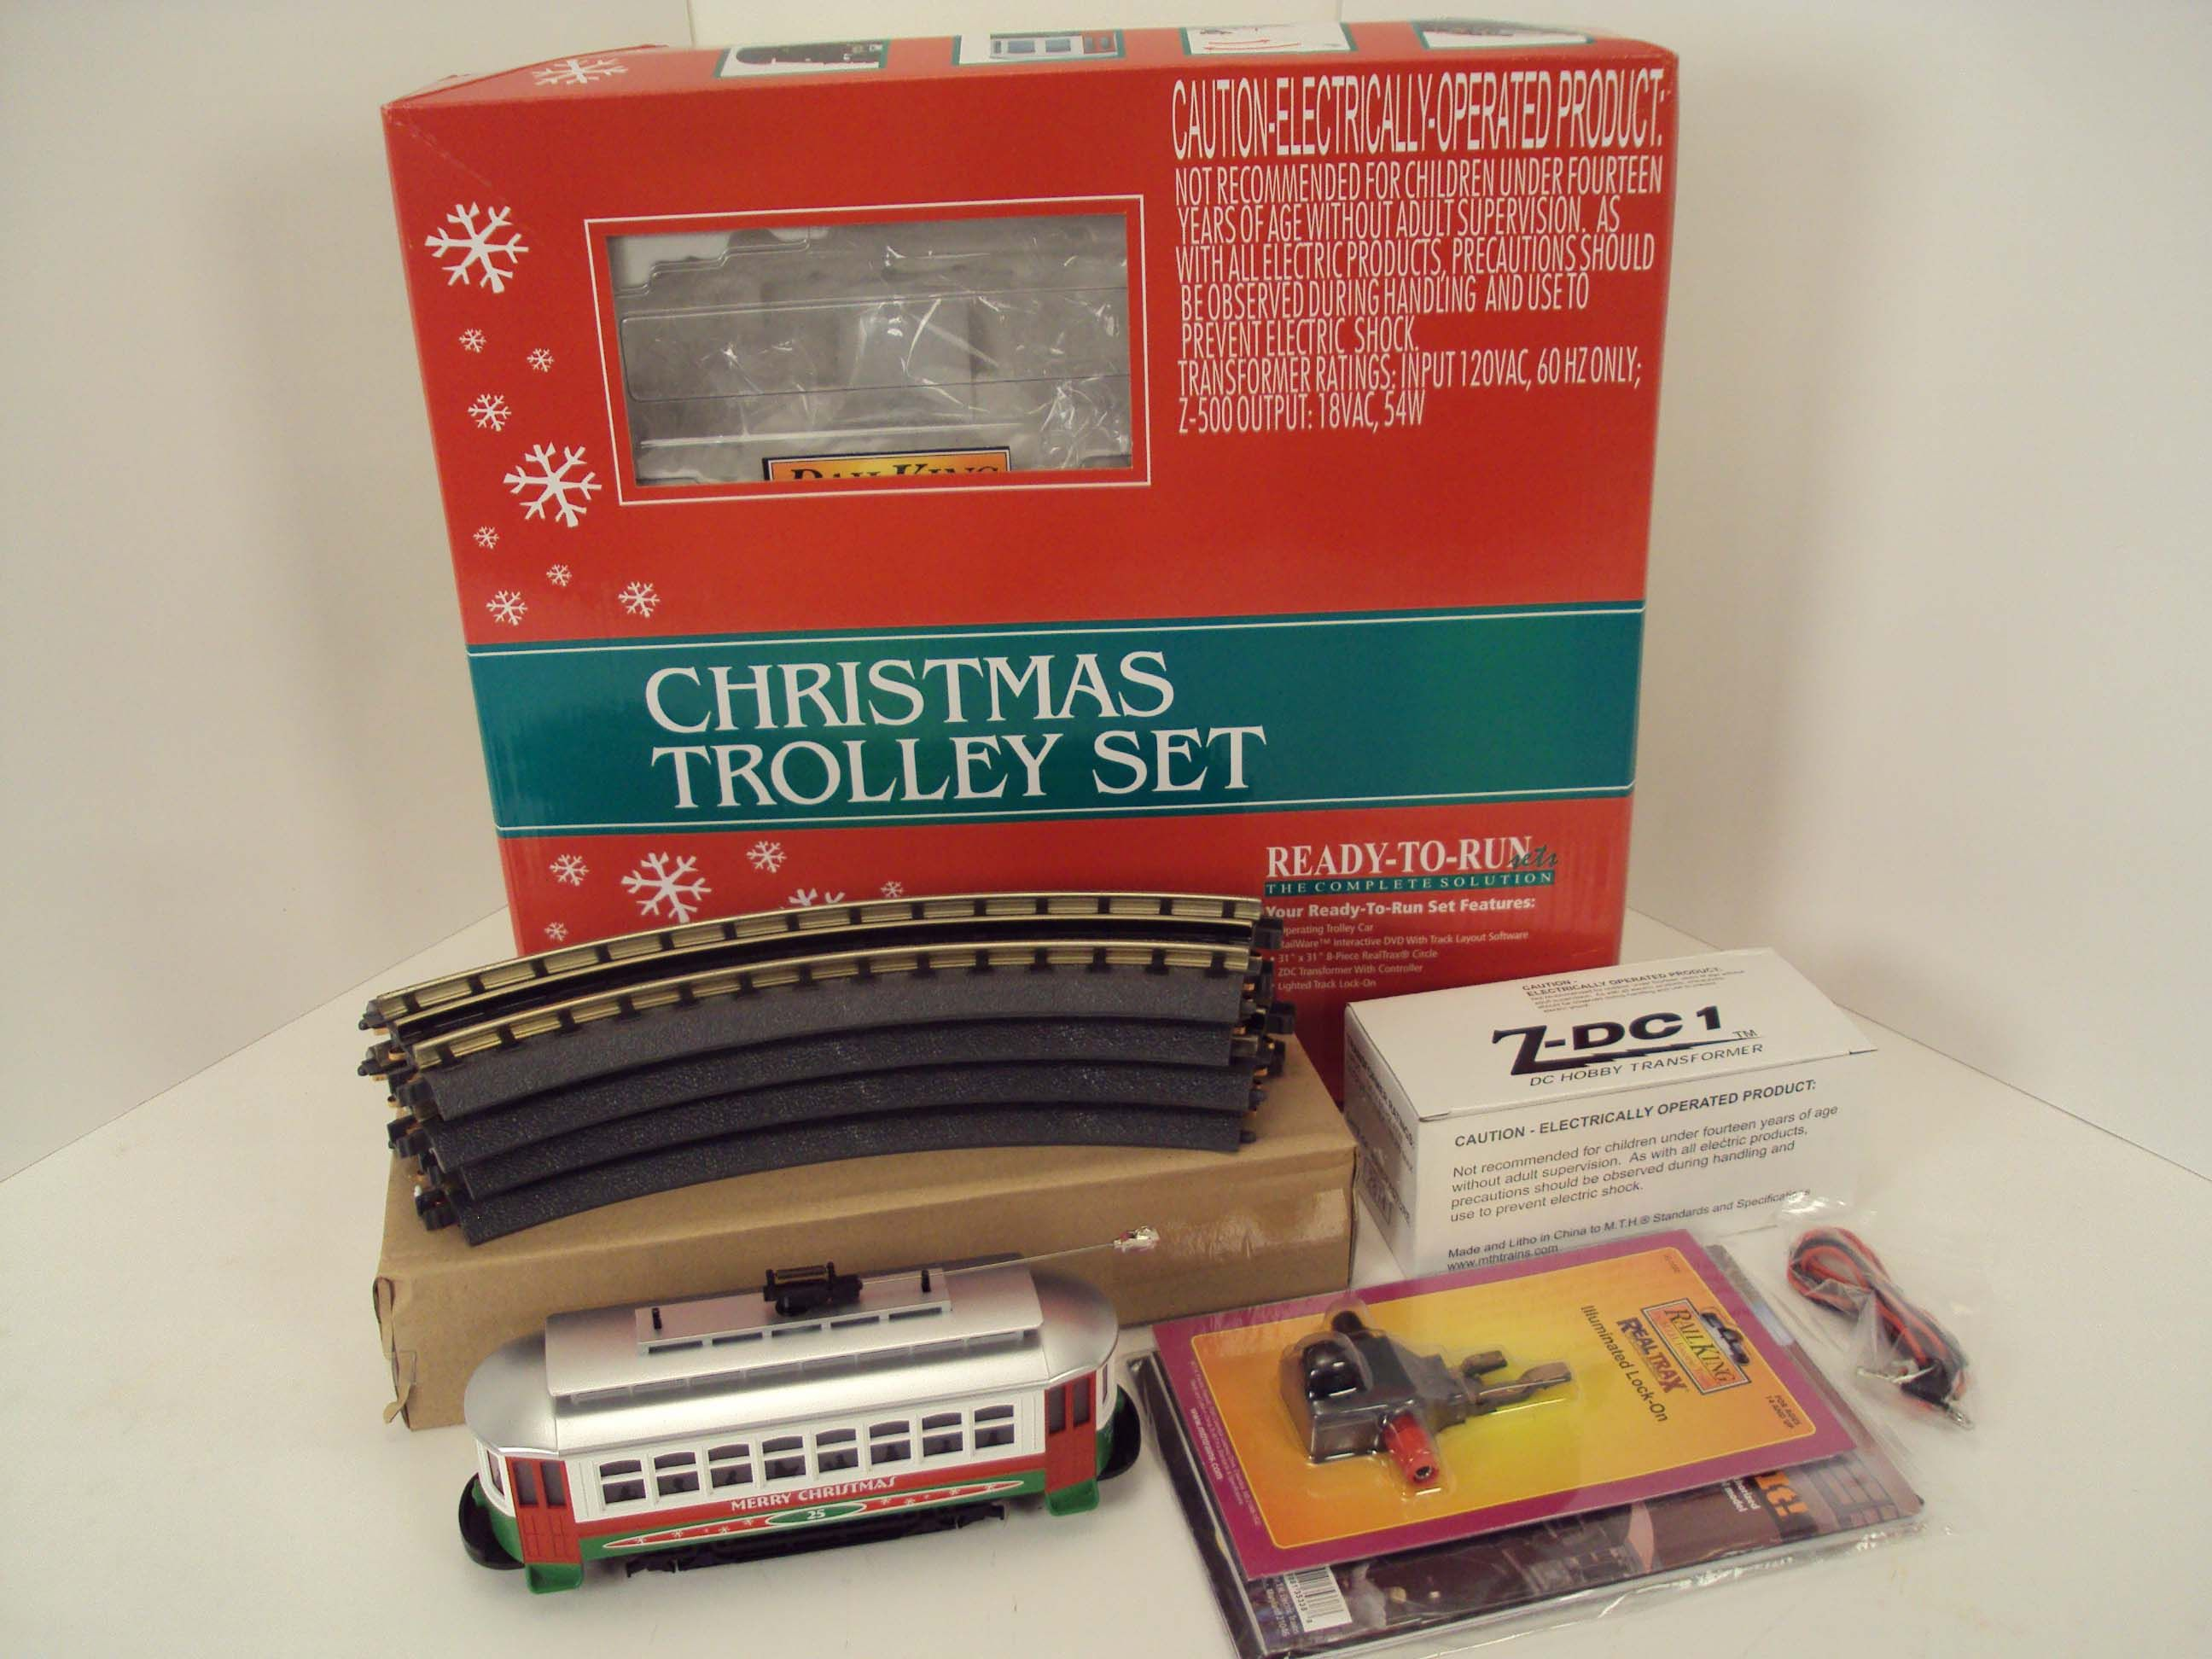 MTH Electric Trains Christmas Trolley R-T-R Train Set 30-4172-1  http://www.mthtrains.com/content/30-4172-1